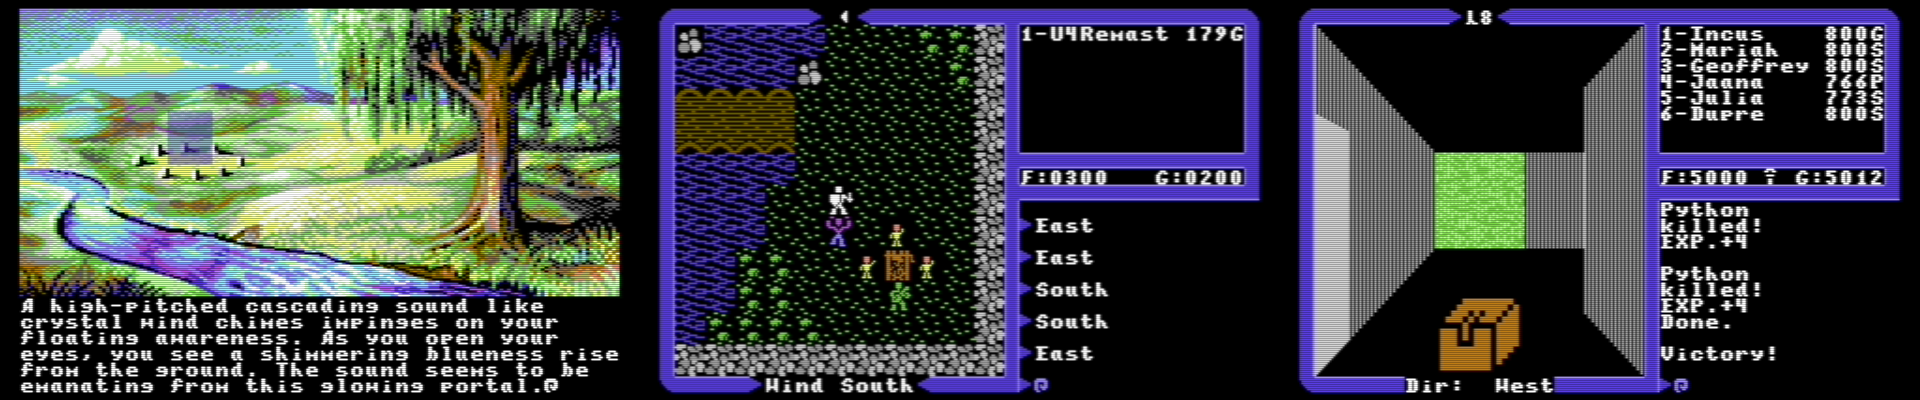 Ultima IV Remastered